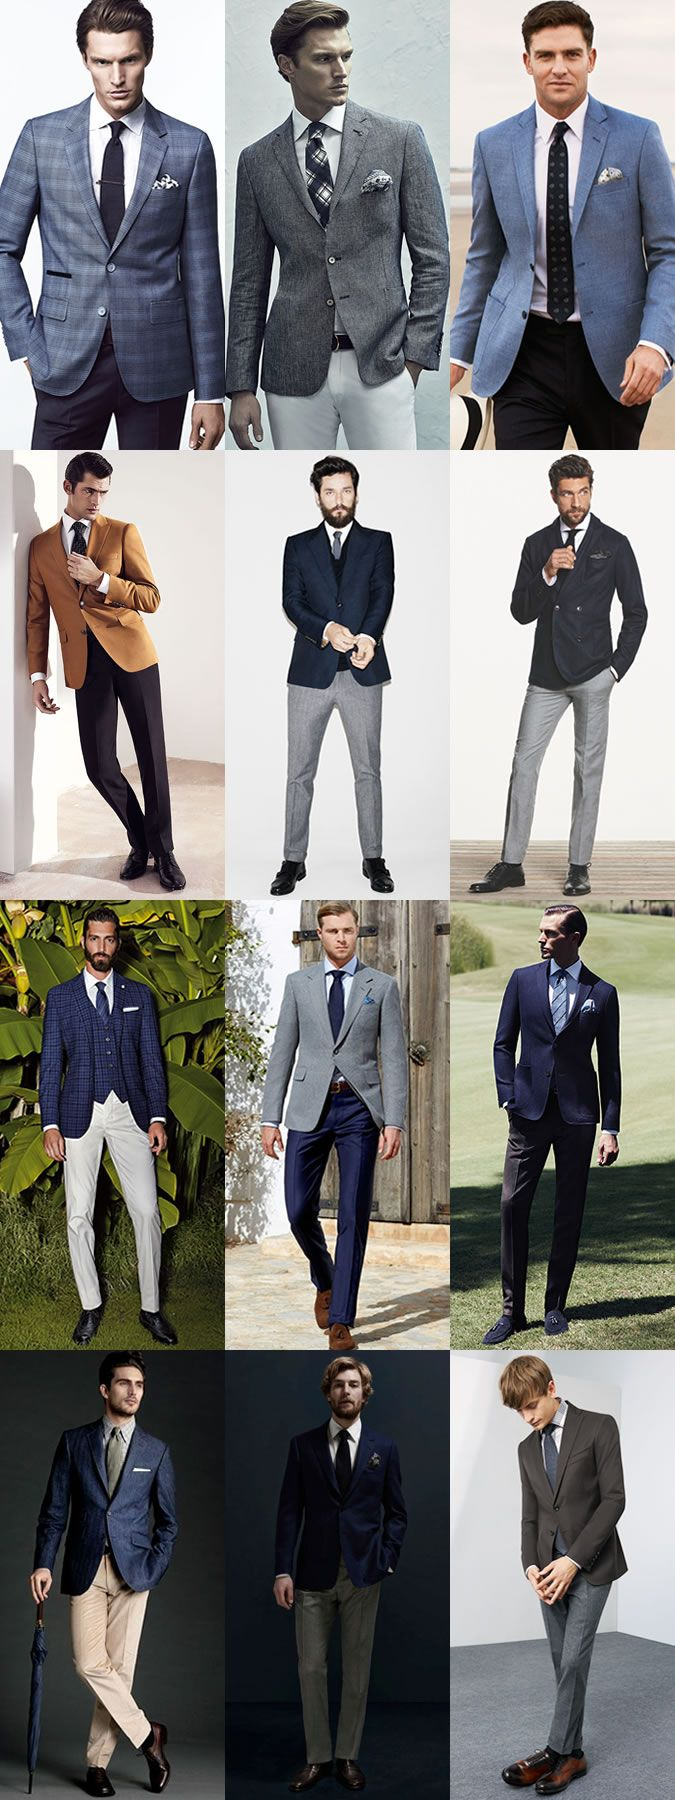 The Groom S Guide To Wedding Wear The Smart Casual Alternative